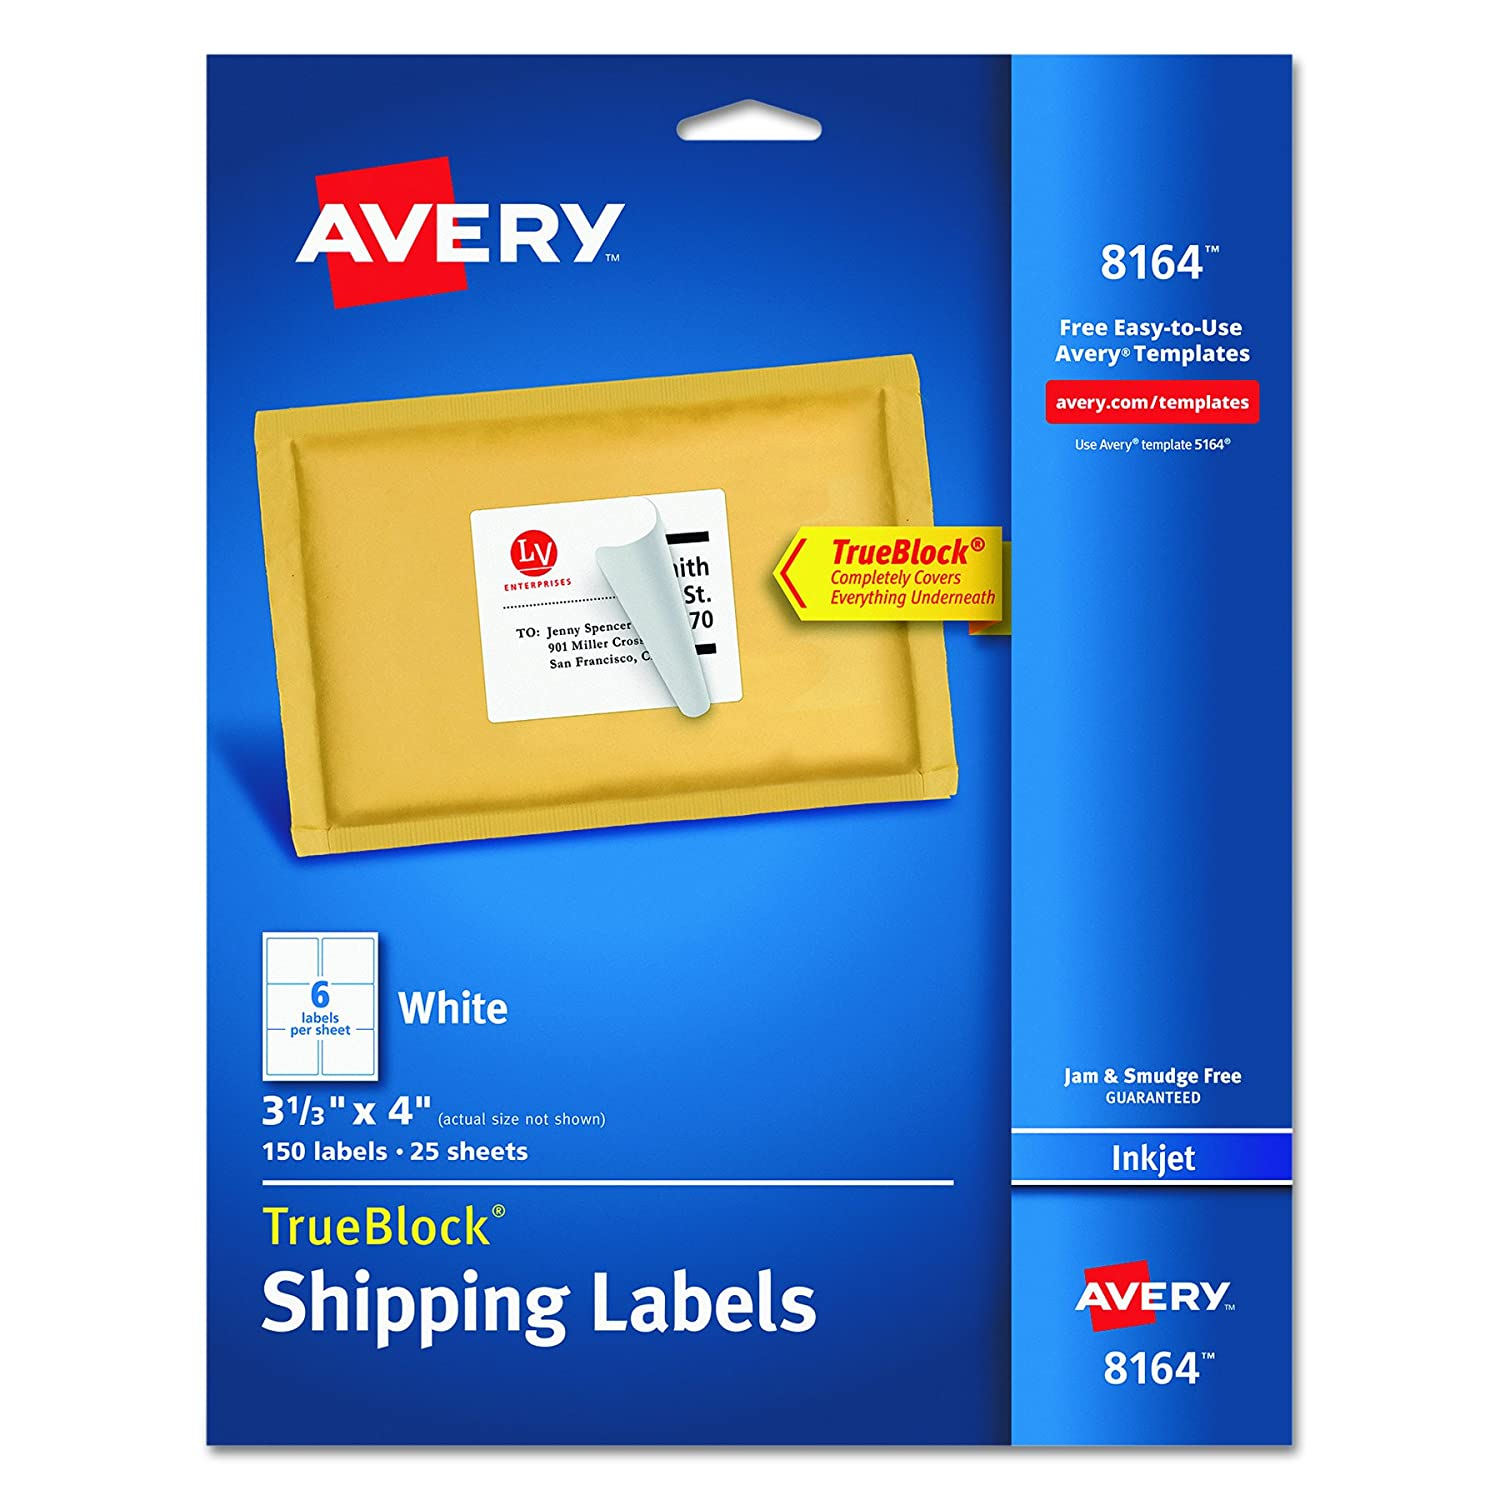 Amazon avery shipping labels with trueblock technology for amazon avery shipping labels with trueblock technology for inkjet printers 3 13 x 4 pack of 150 8164 office products pronofoot35fo Image collections